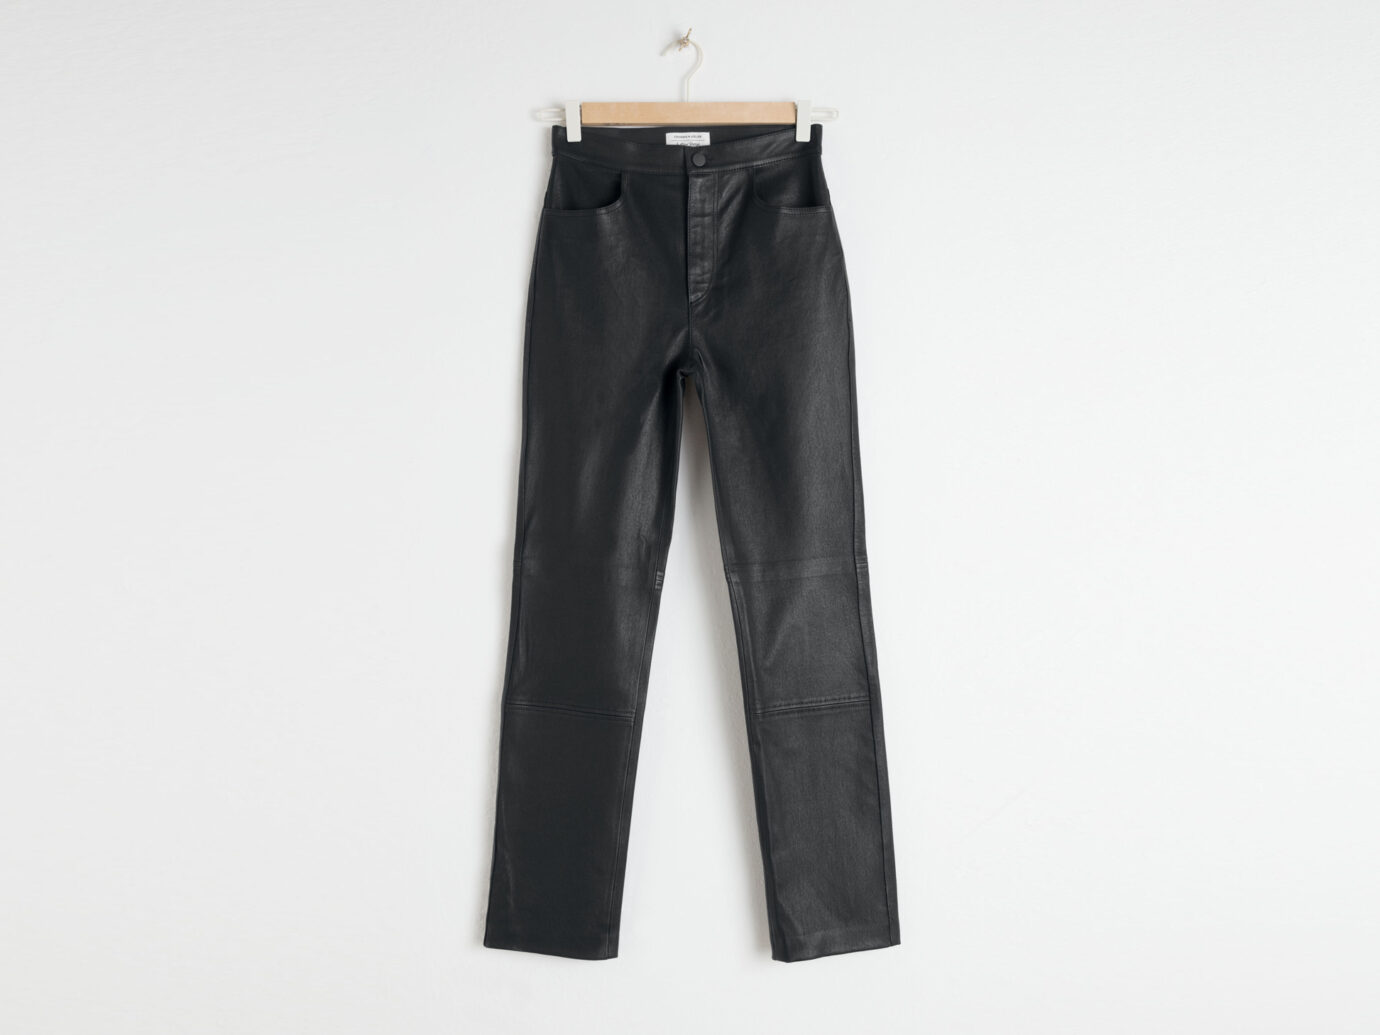 & Other Stories High Waisted Leather Pants